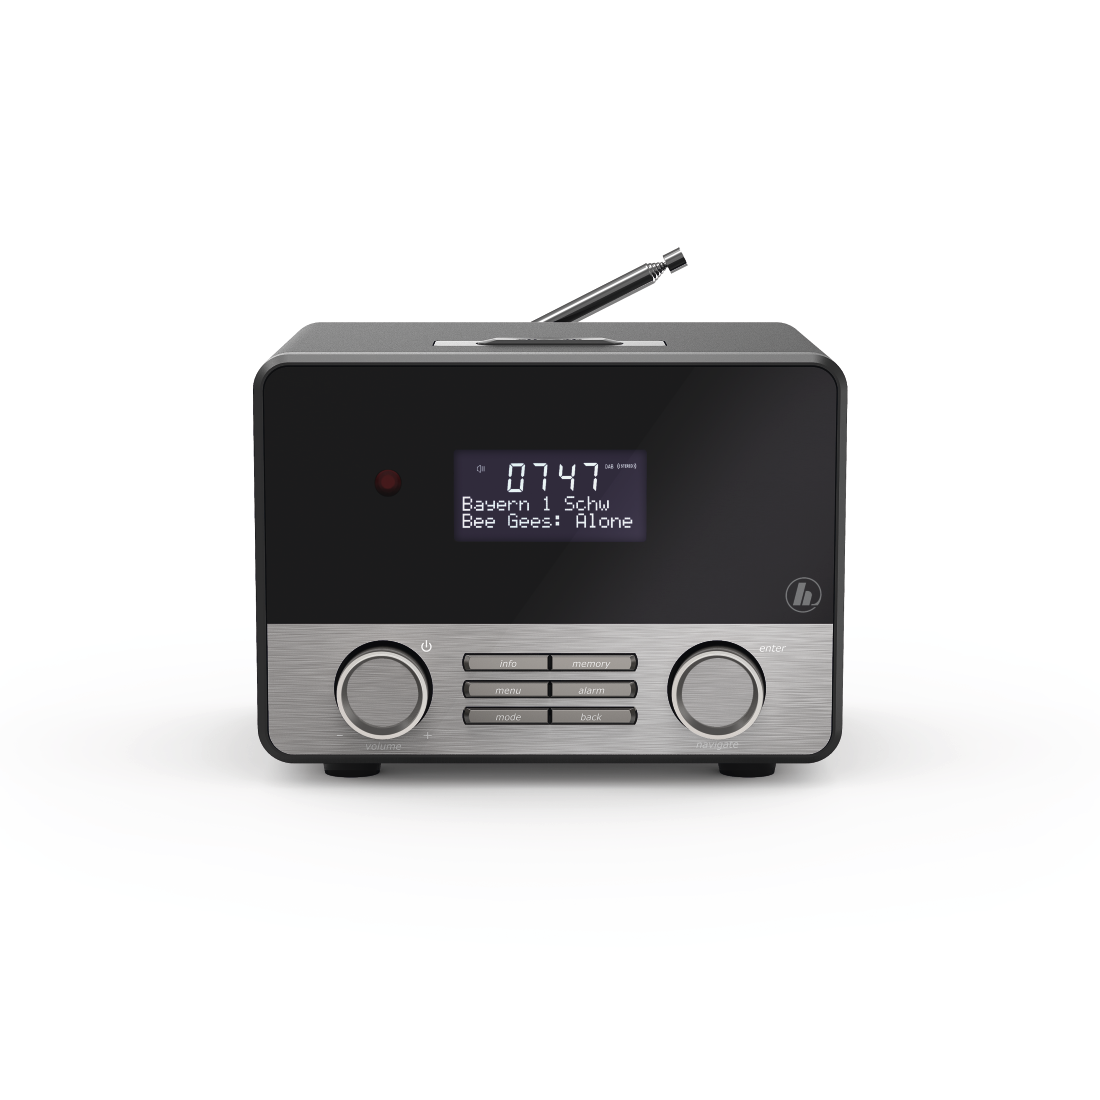 abx4 High-Res Image4 - Hama, DR1600BT Digital Radio, DAB+/FM/Bluetooth